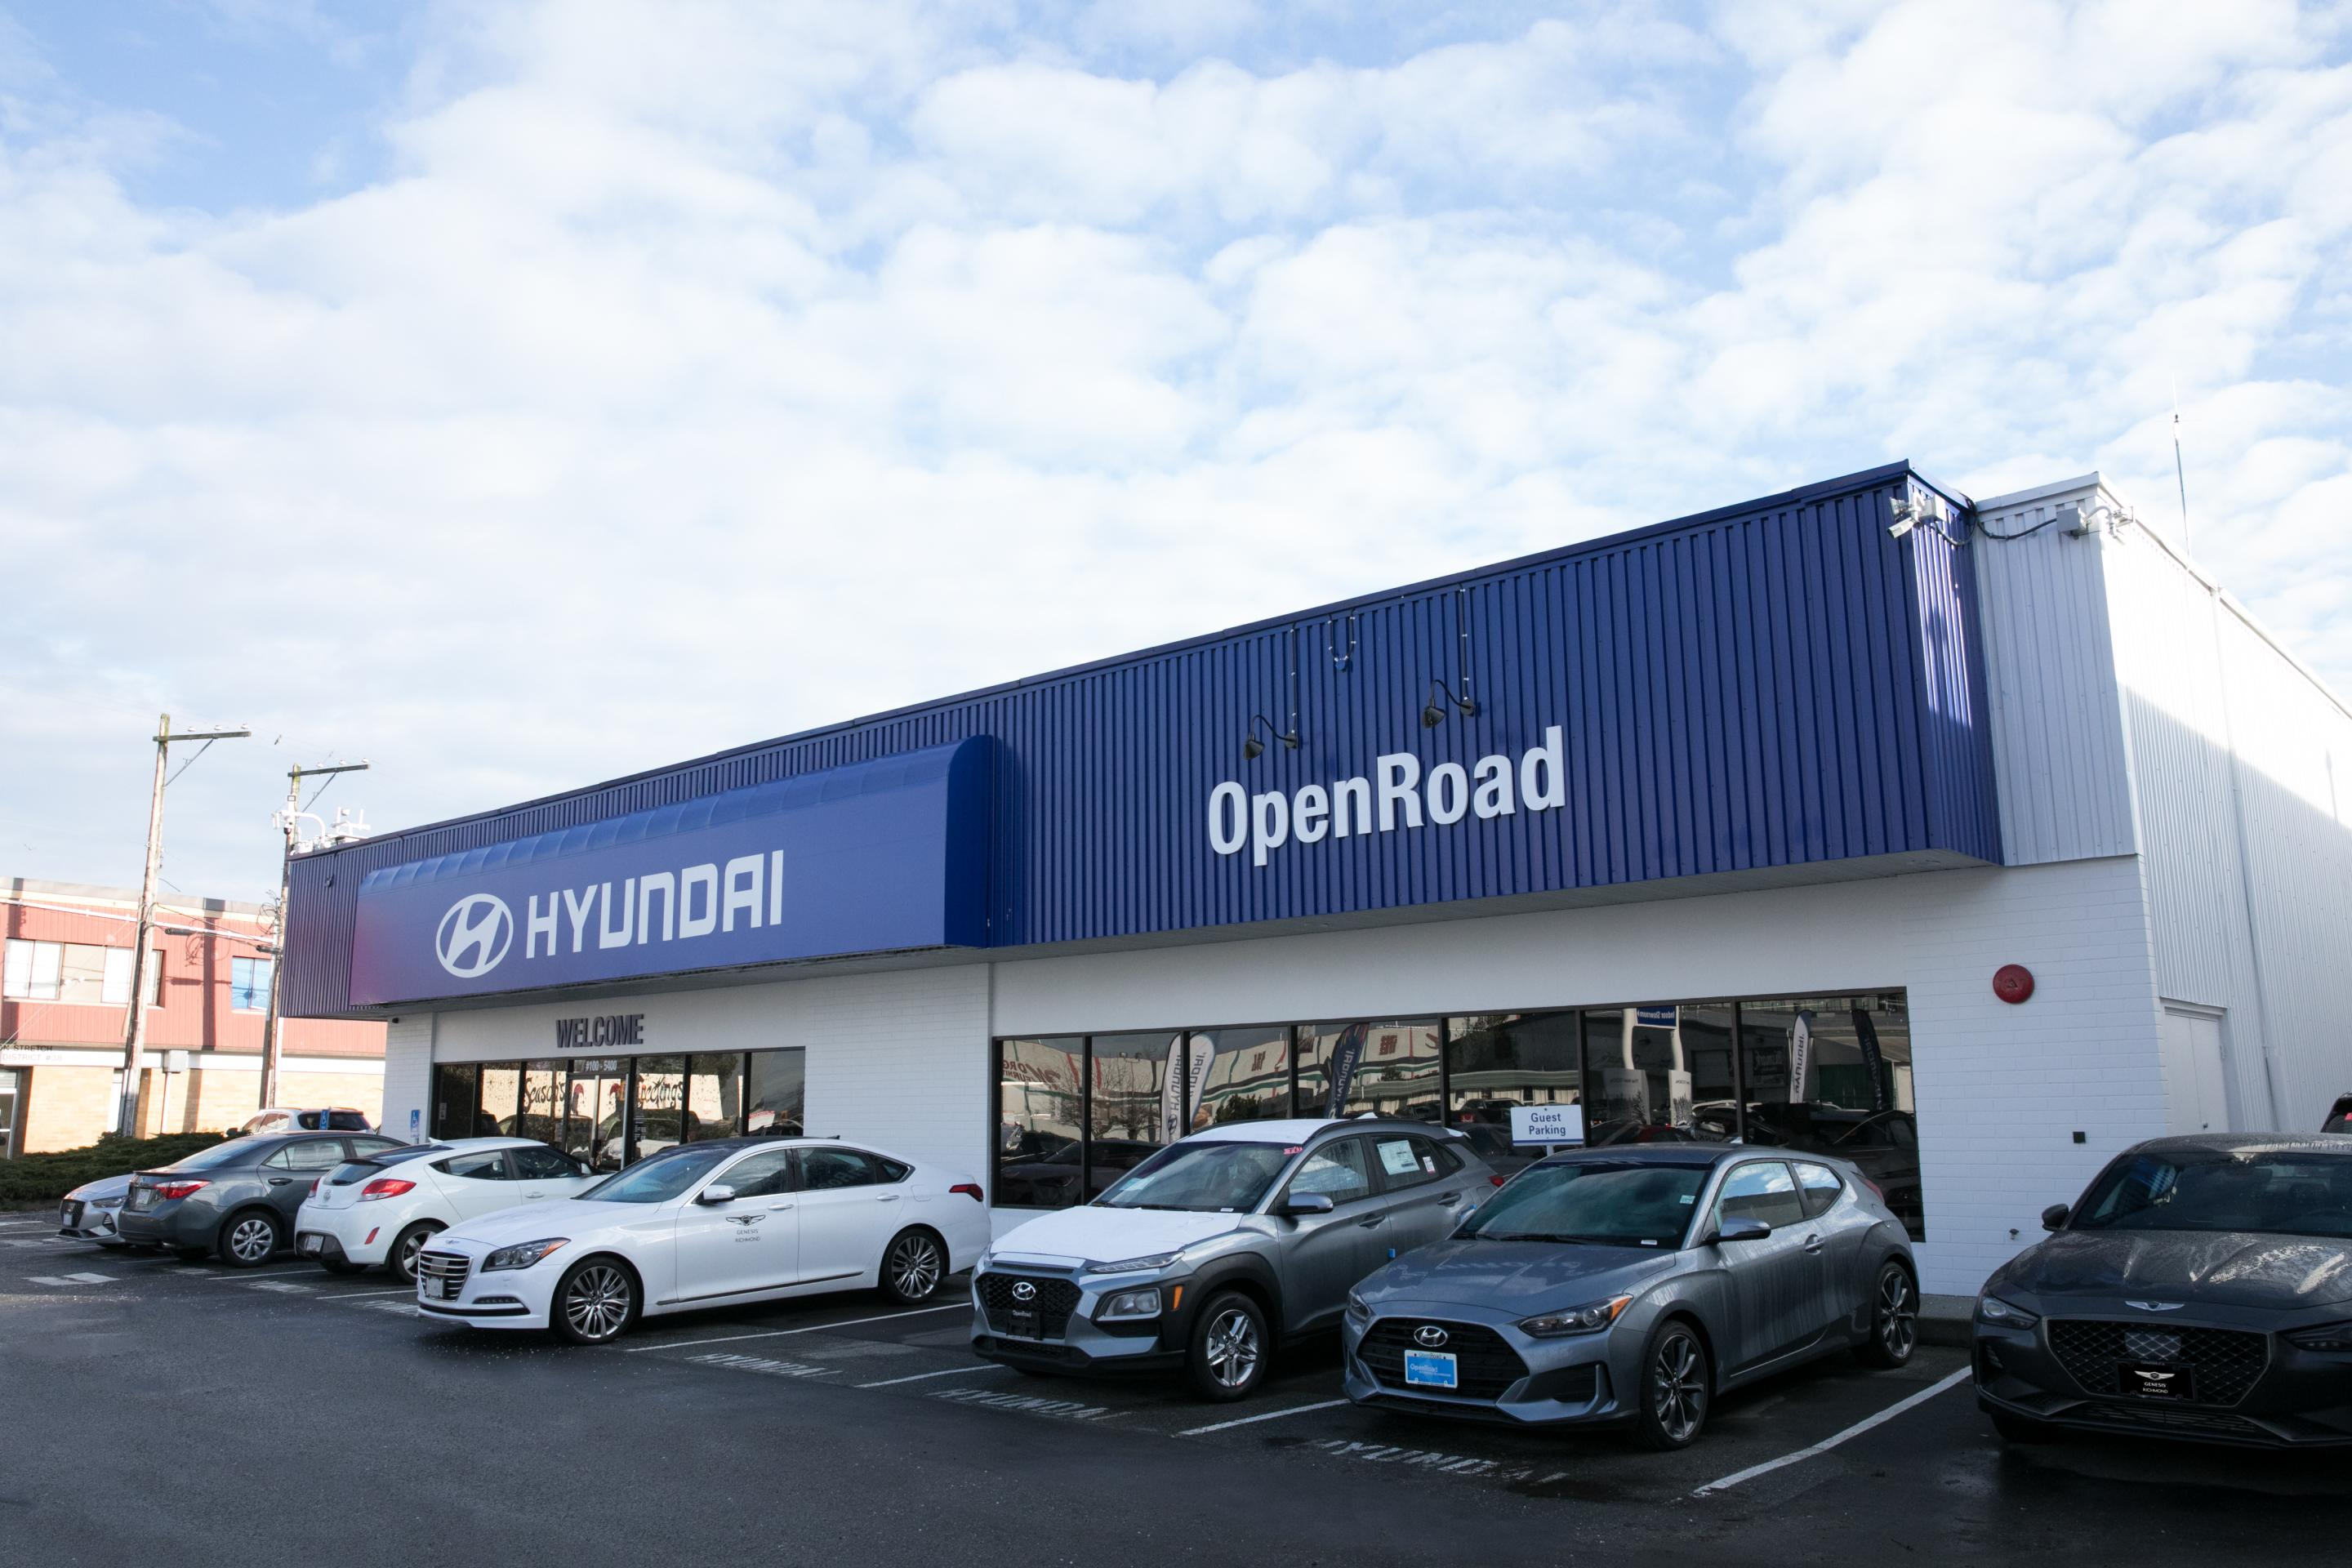 OpenRoad Hyundai Richmond